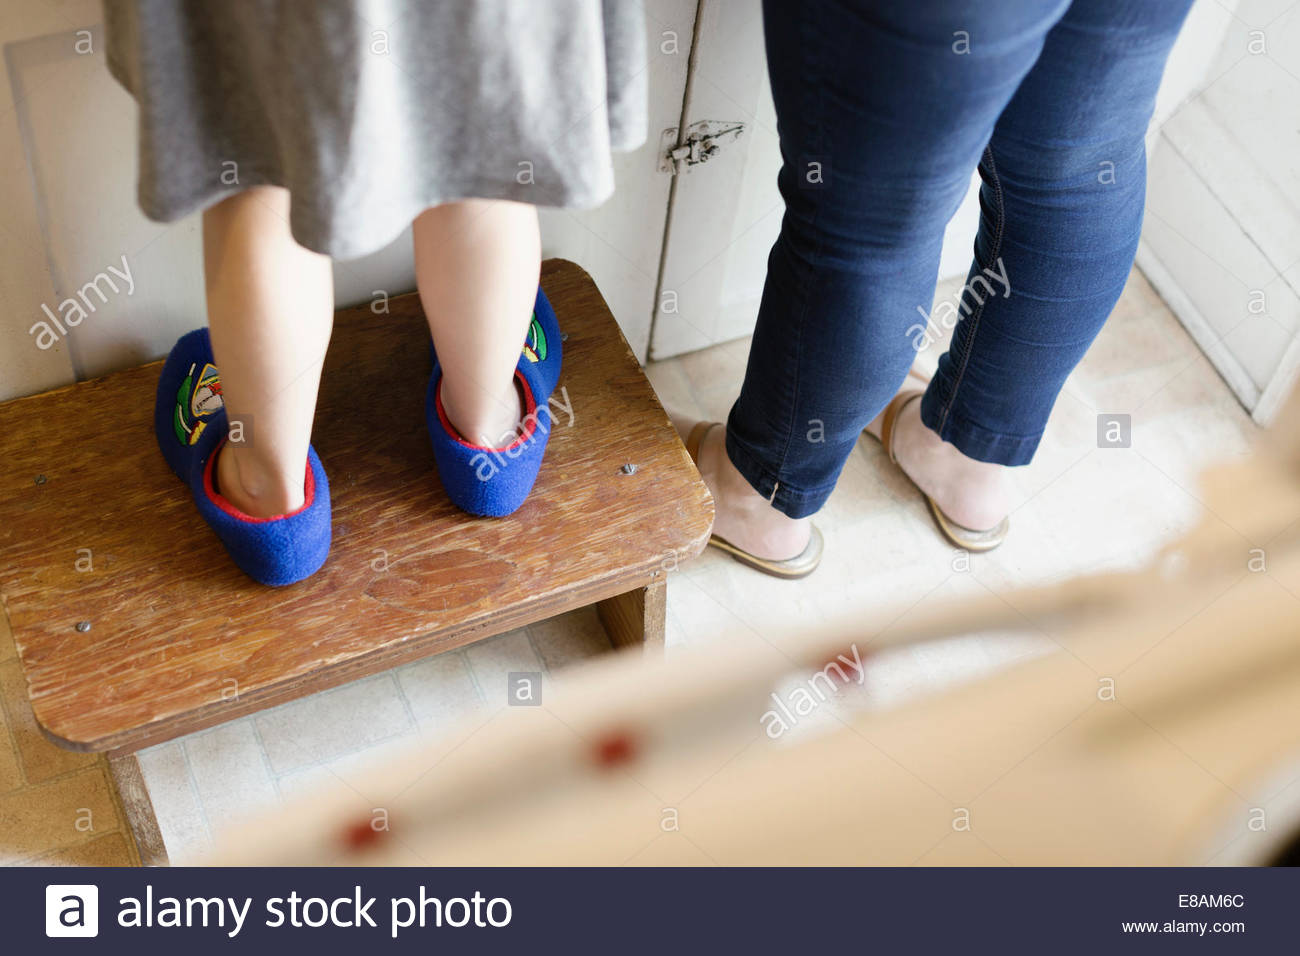 Legs of mid adult mother next to daughter standing on stool in kitchen Stock Photo